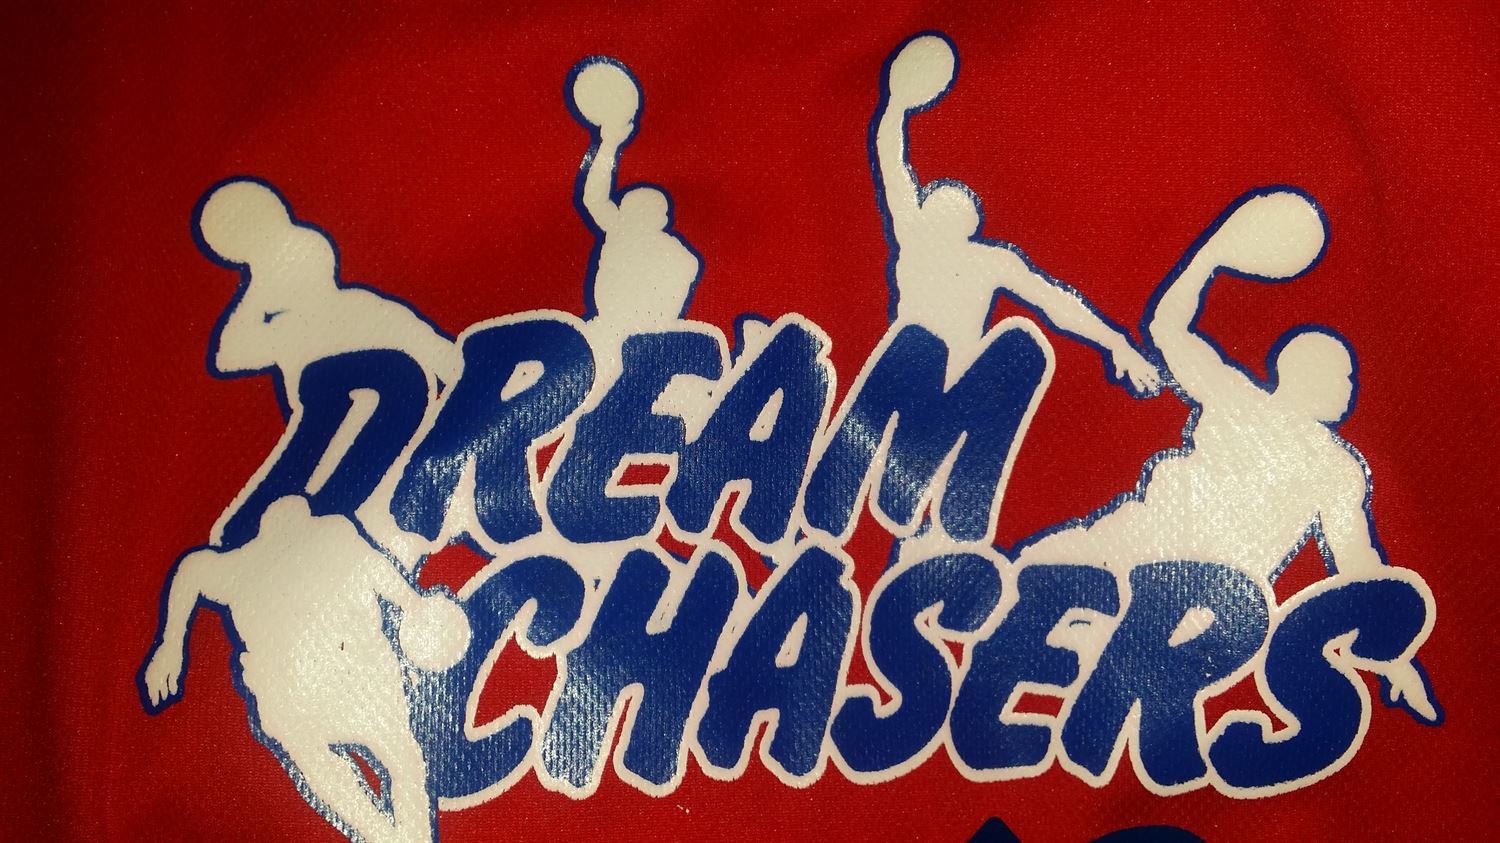 KY DreamChasers - KY DreamChasers